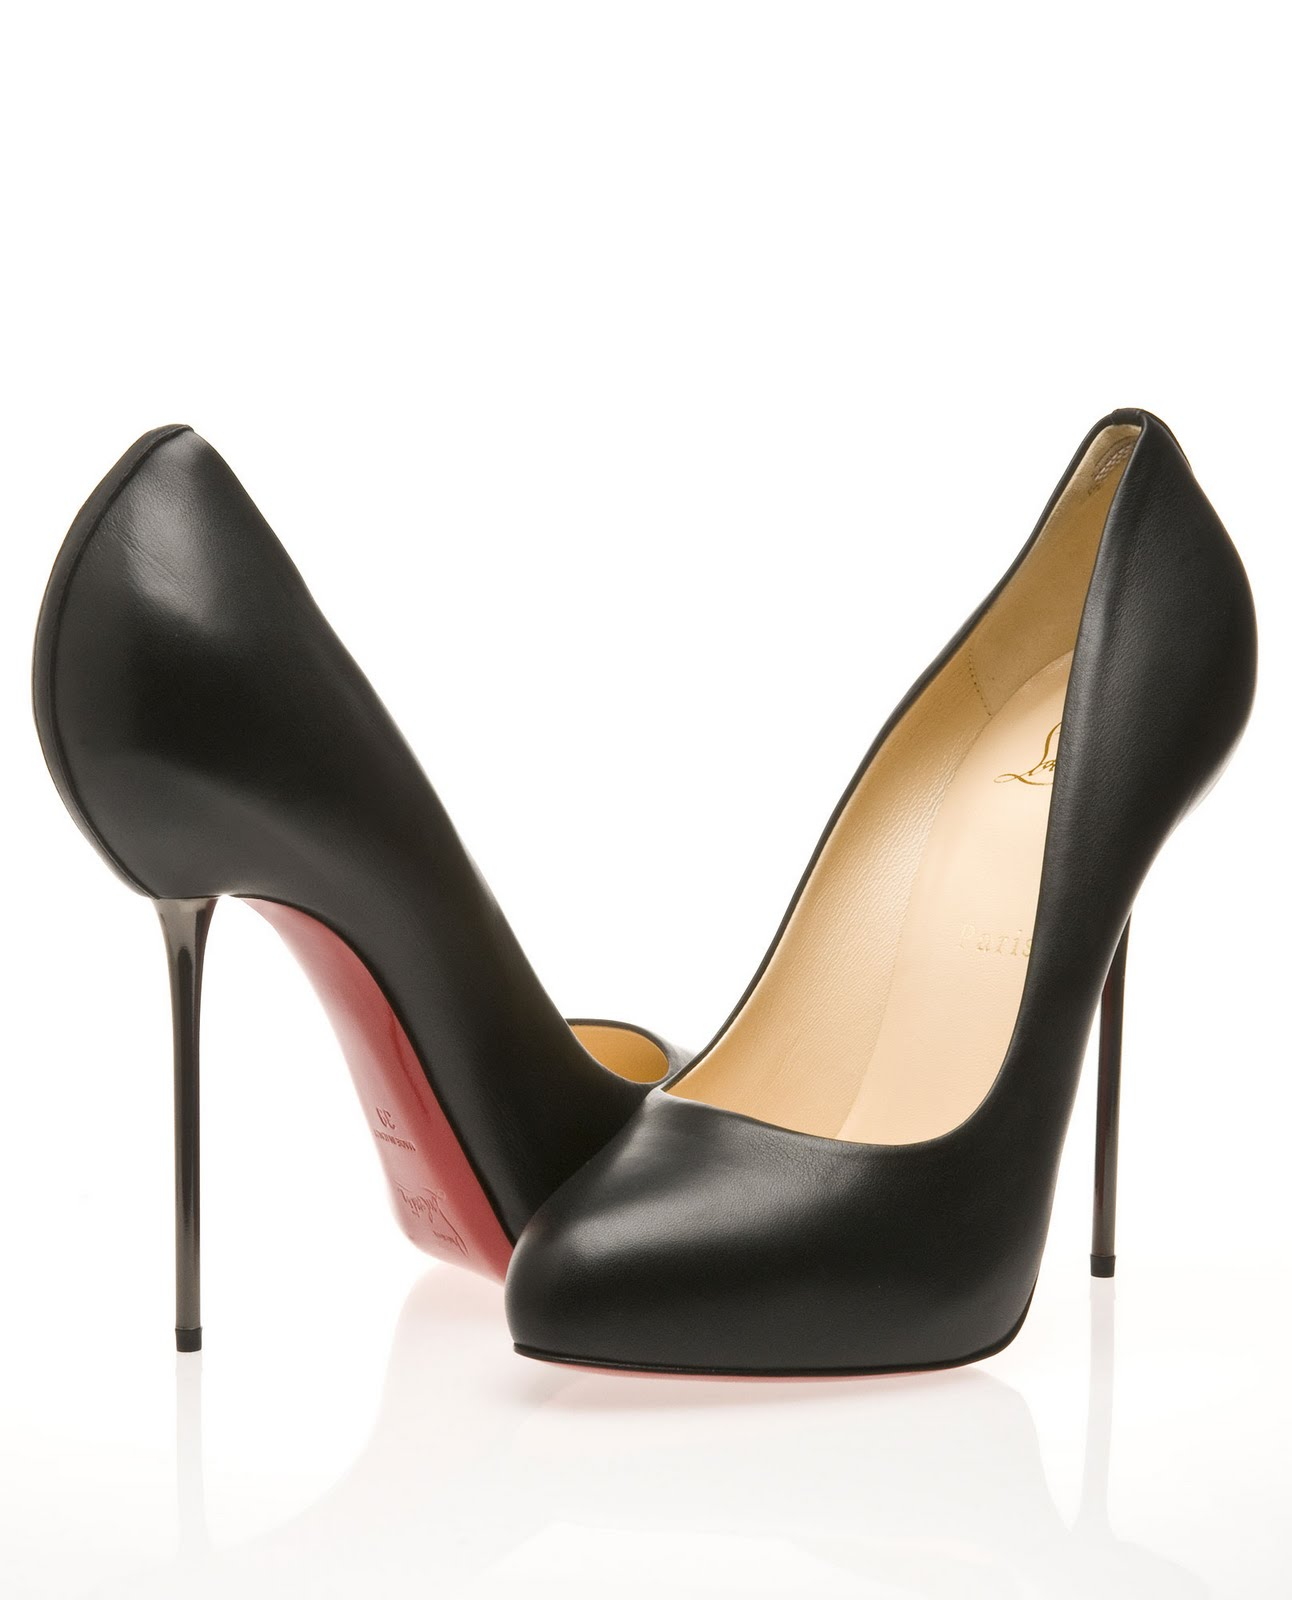 best heels new christian louboutin big lips shoes 2010. Black Bedroom Furniture Sets. Home Design Ideas